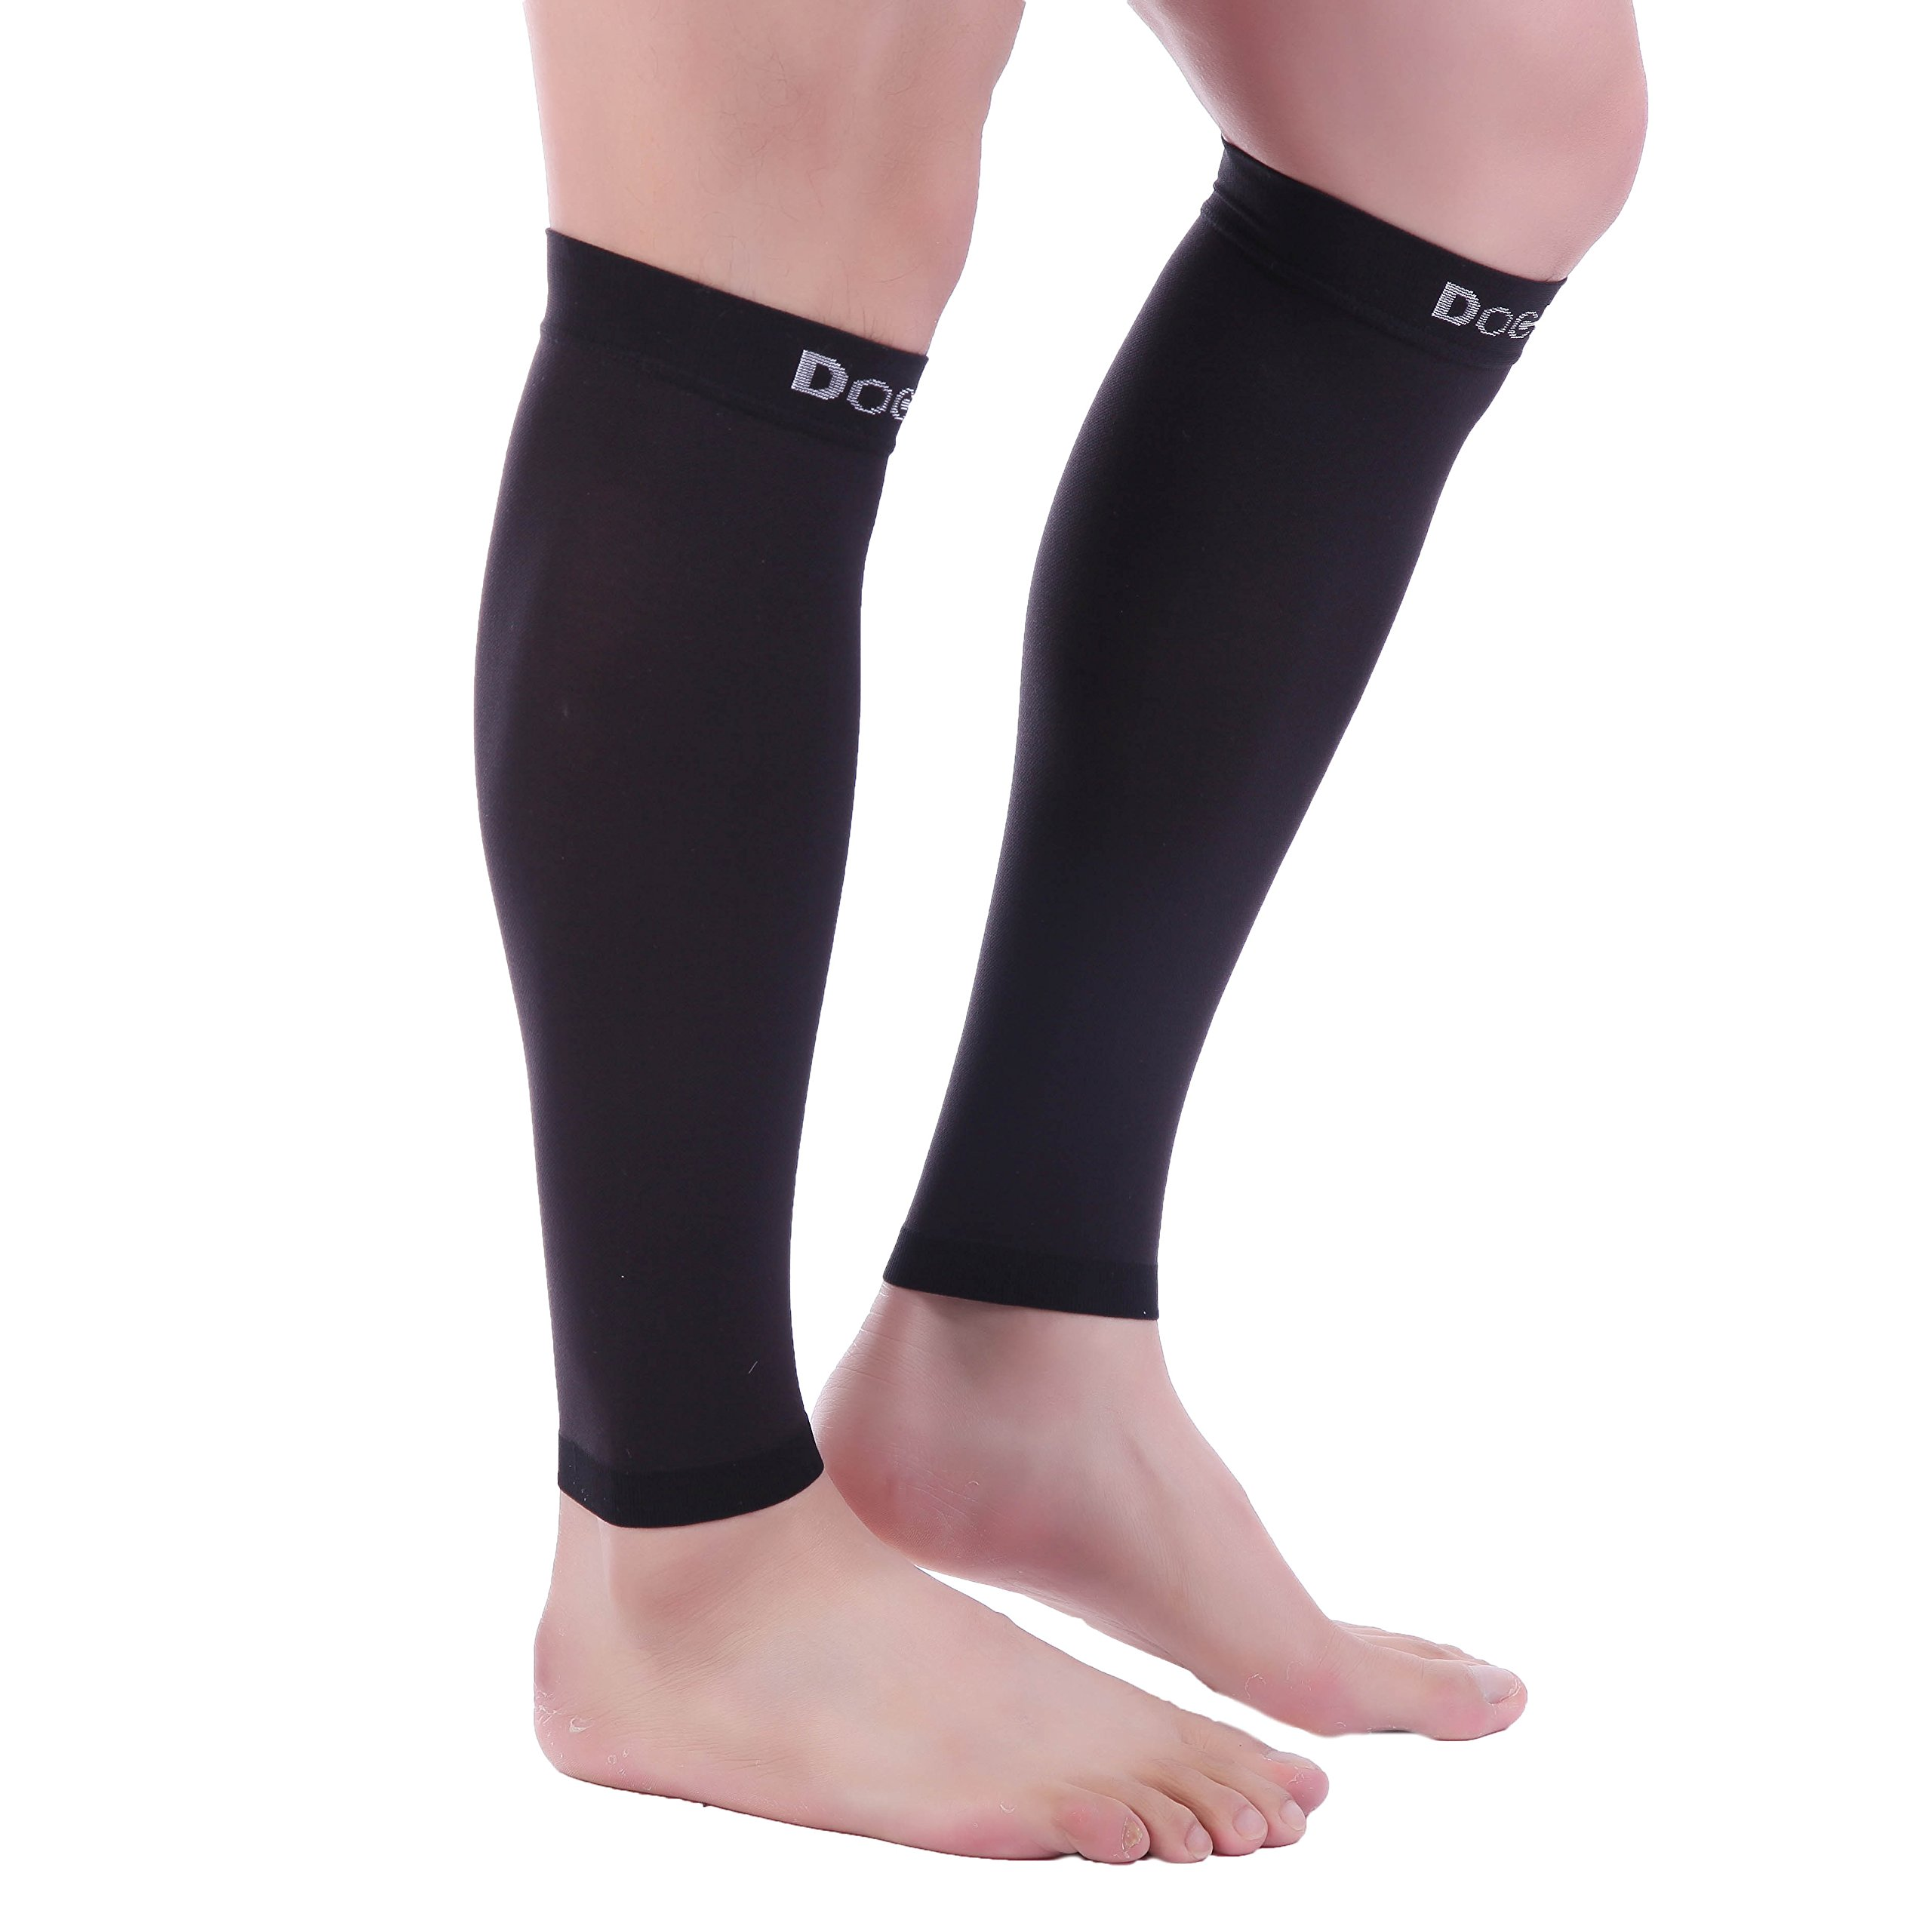 Doc Miller Premium Calf Compression Sleeve 1 Pair 20-30mmHg Strong Calf Support Graduated Pressure for Sports Running Muscle Recovery Shin Splints Varicose Veins (Black, 2-Pack, Large) by Doc Miller (Image #6)